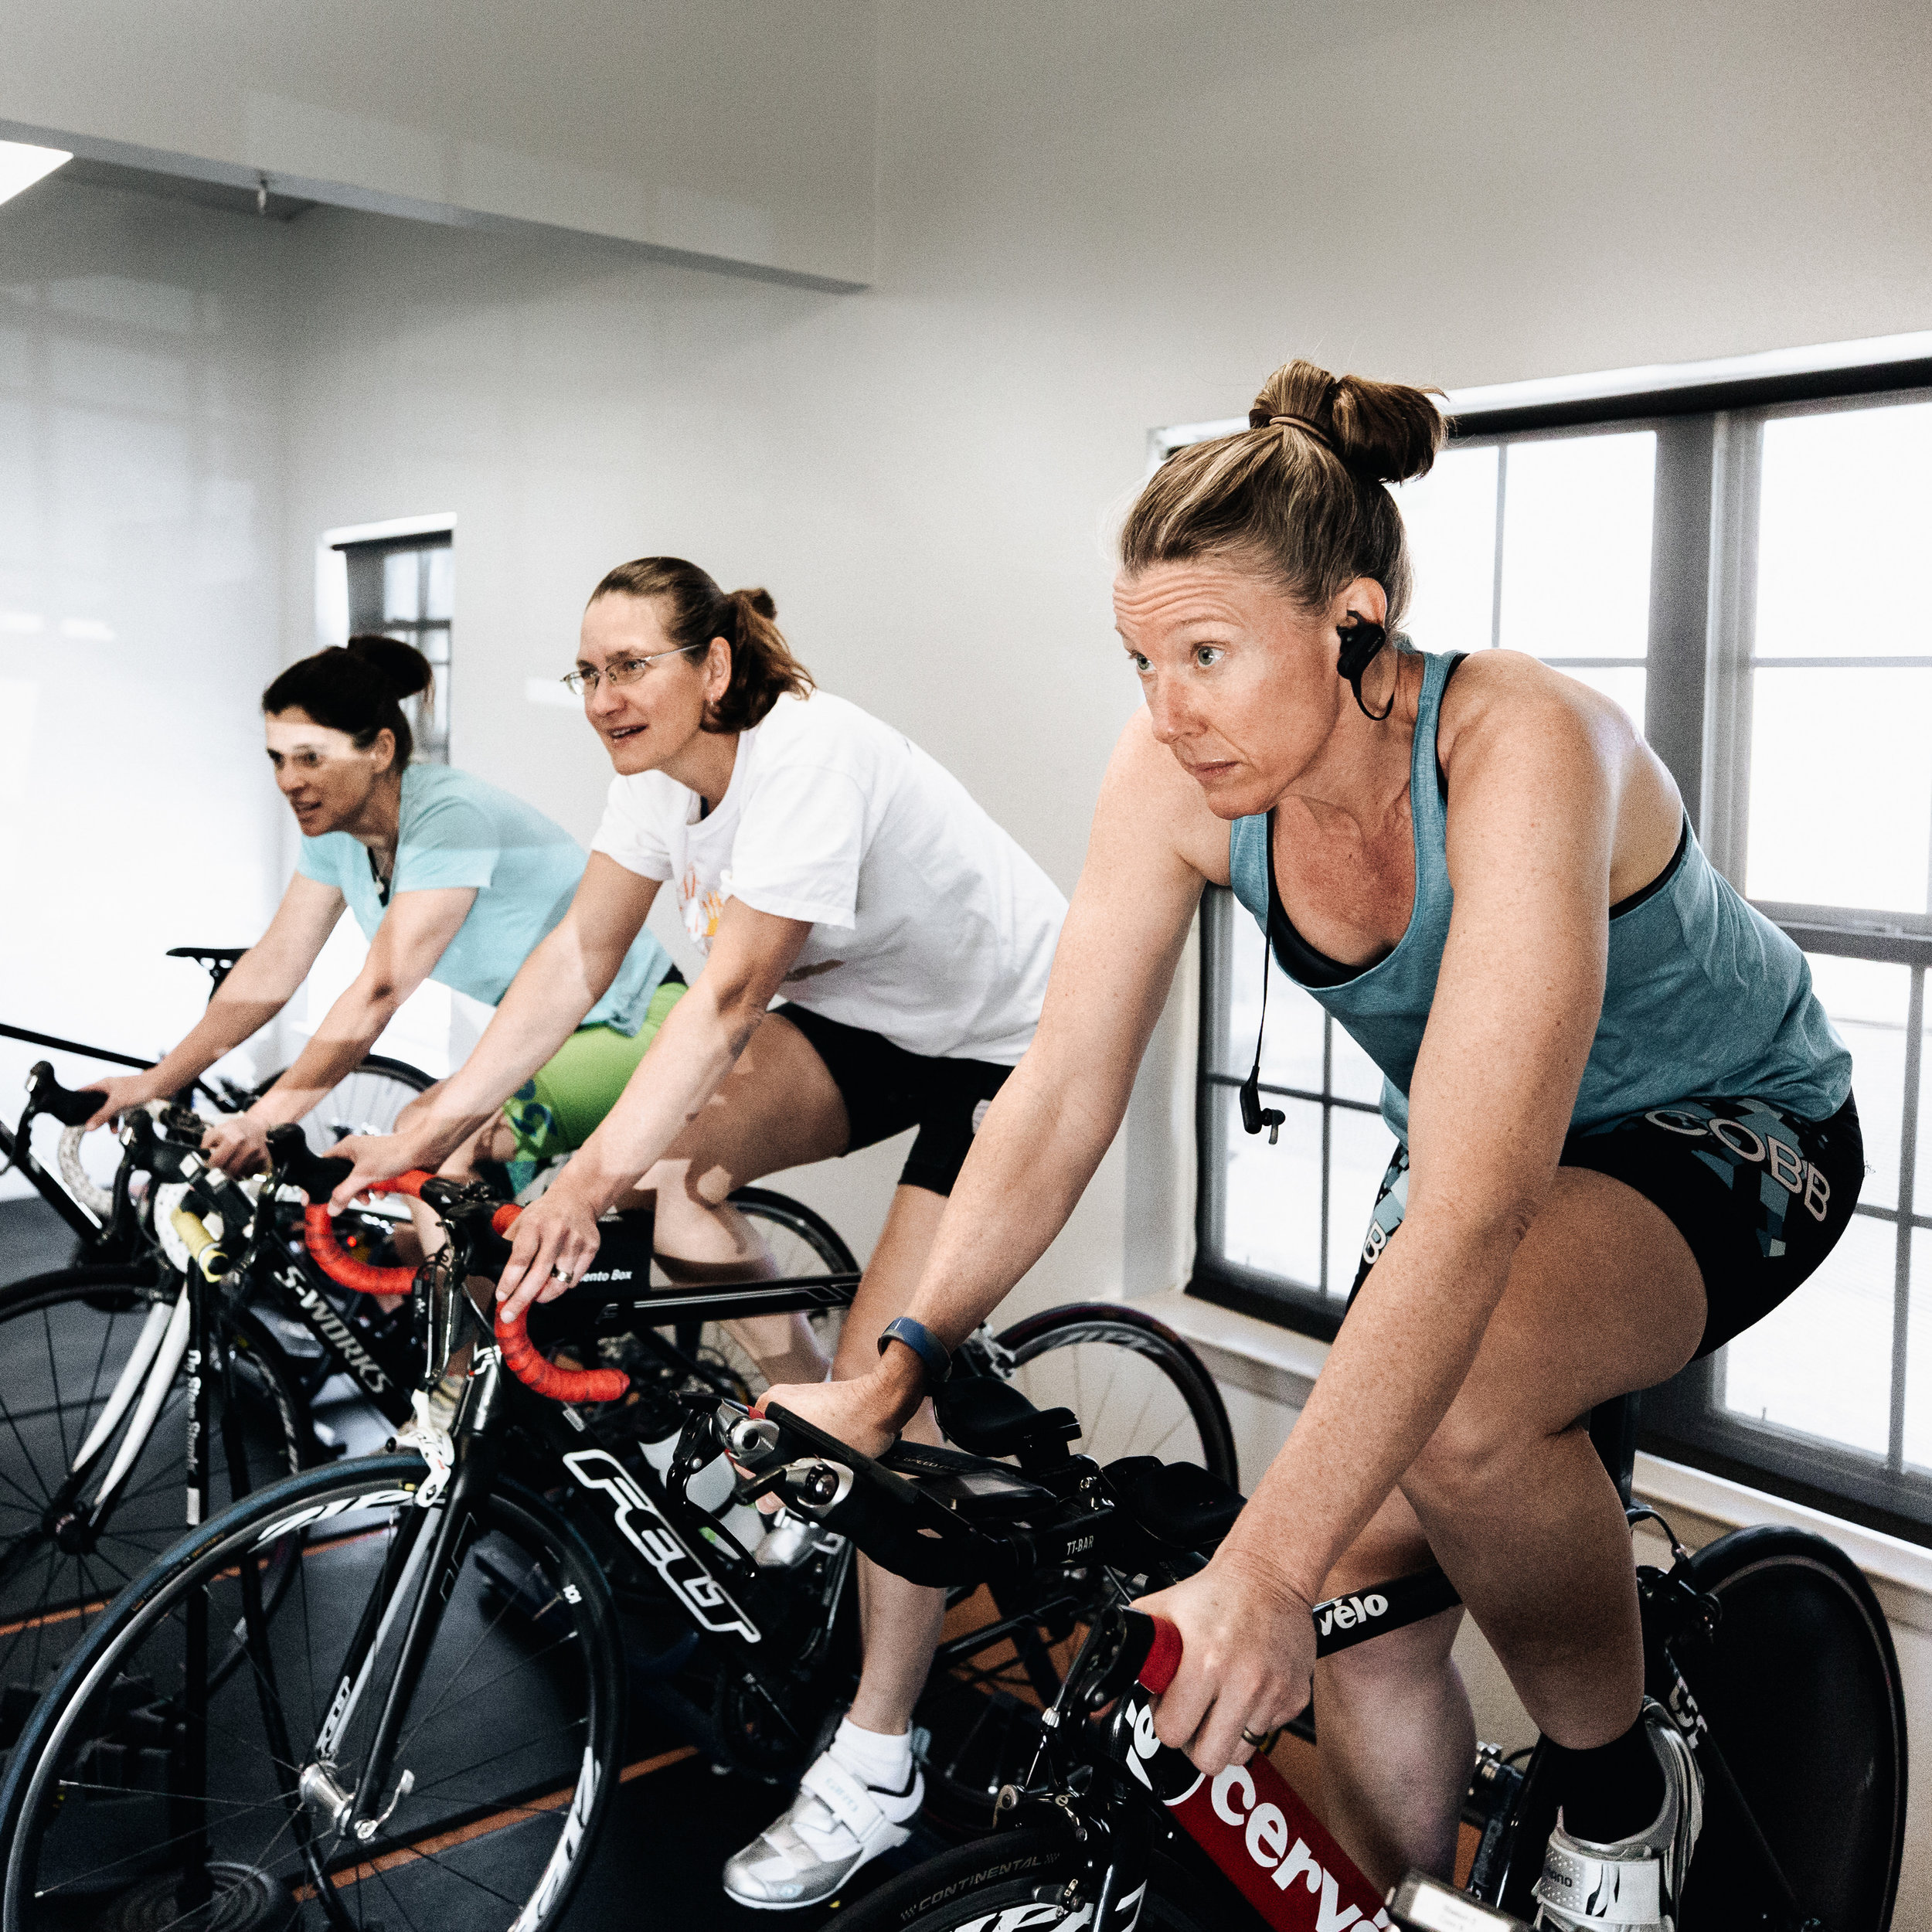 Don't Worry about the bad weather - Our indoor Cycling Corral is the spot to ride and train when you don't want to be outside. Bring your bike in and get stronger by riding on our Wahoo KCKR's a few times a week. Ride with a group or get in some good solo cardio time. We will assess you and help determine the appropriate training zones to work in.